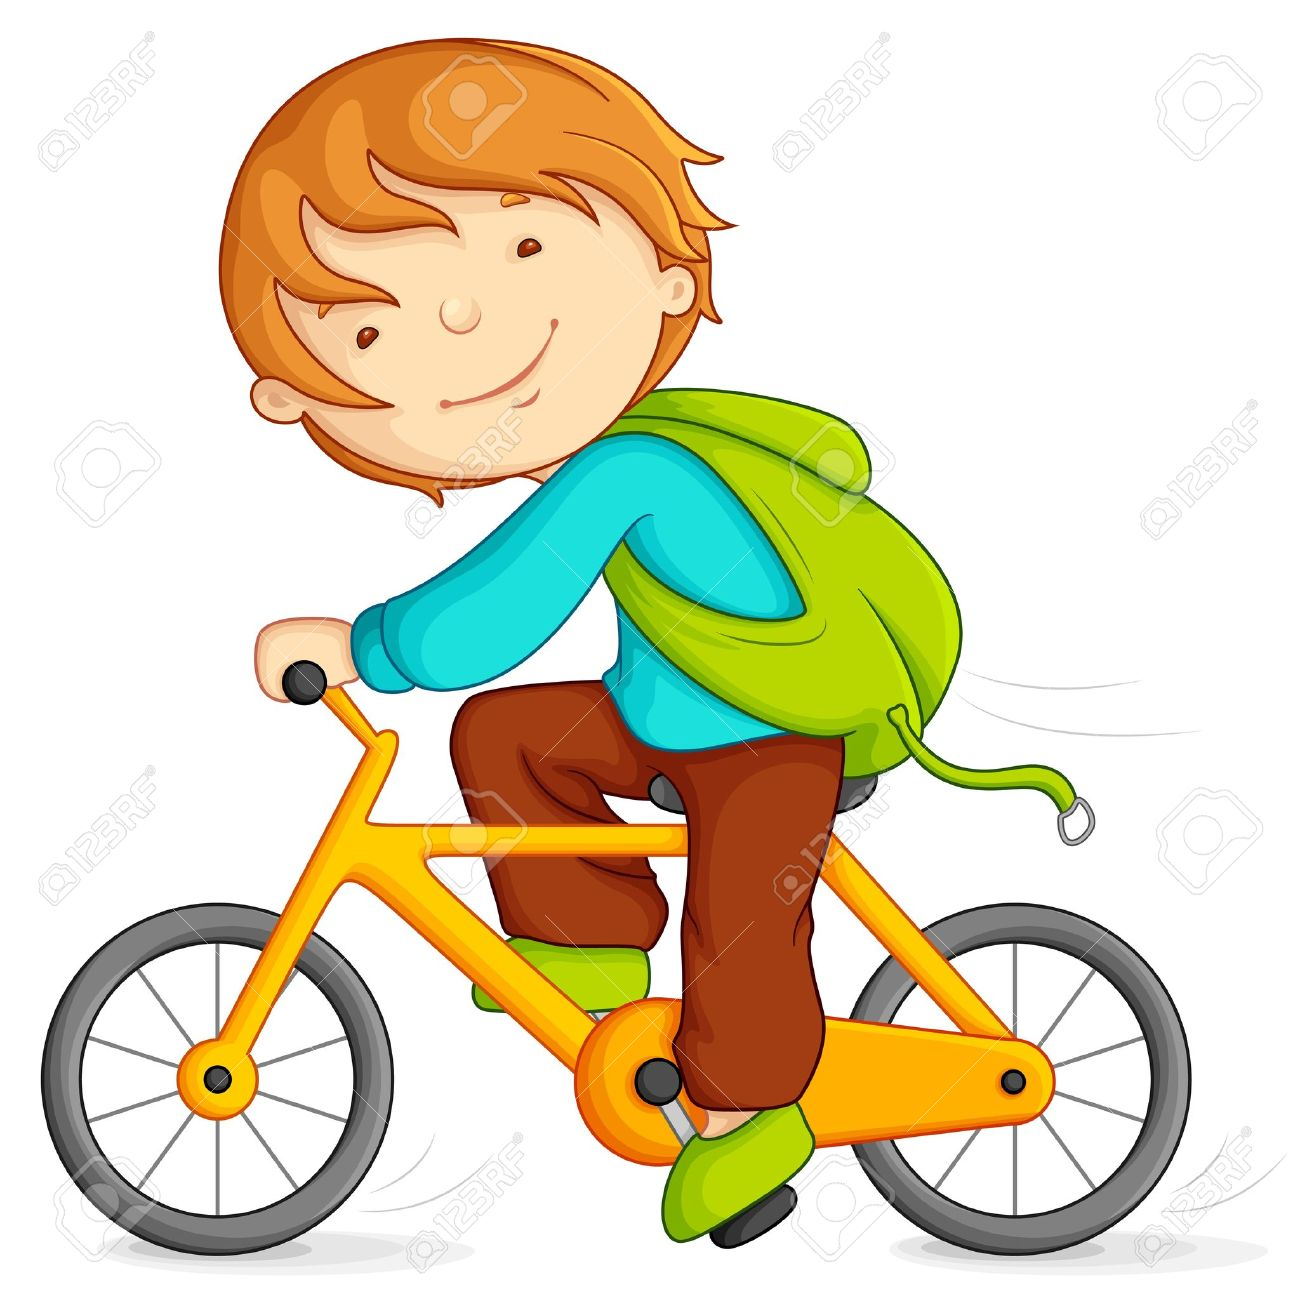 Ride a bike clipart 7 » Clipart Station.